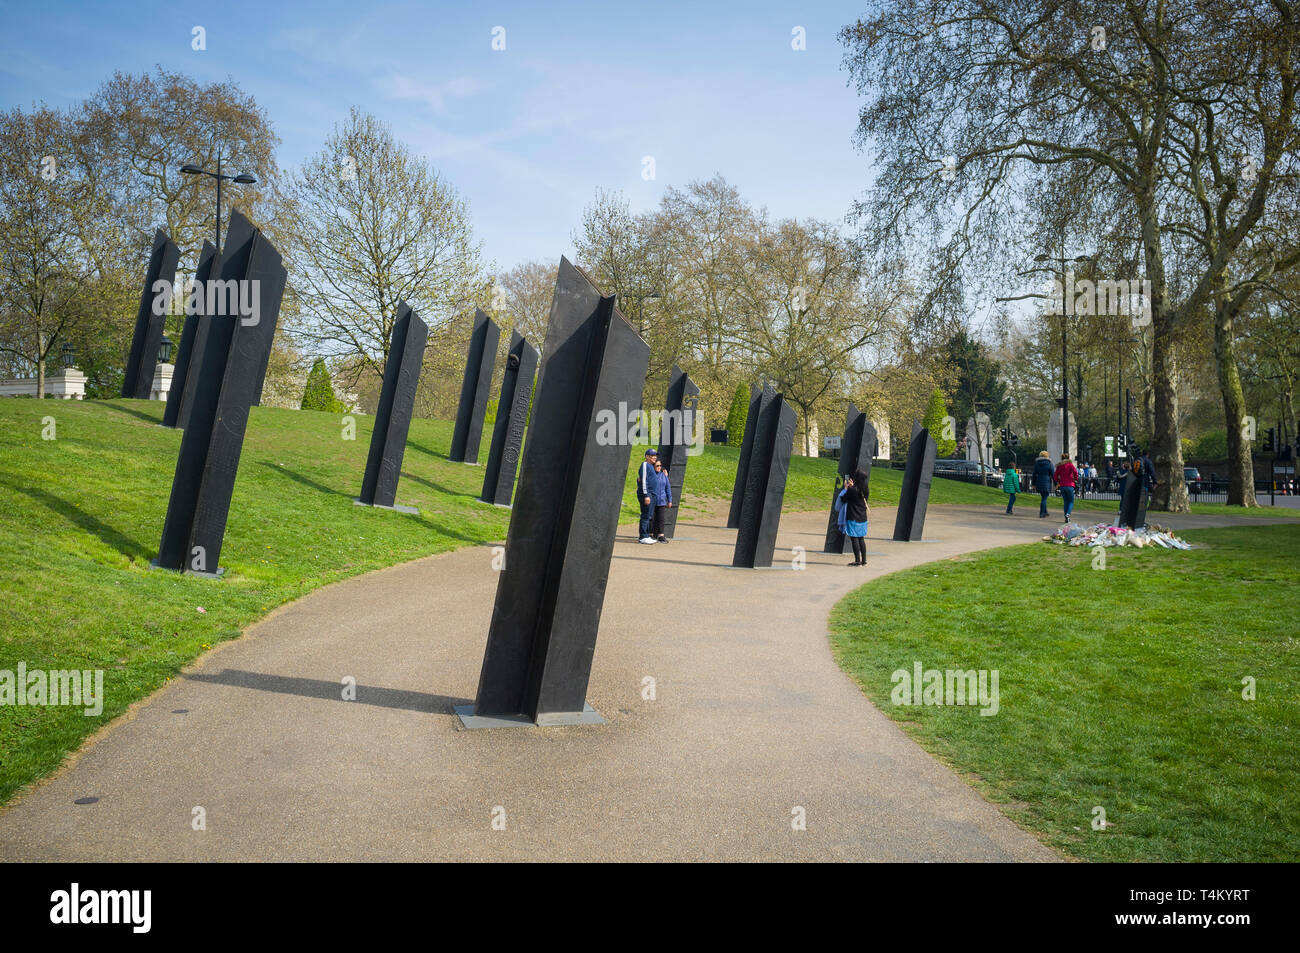 Tourists take photographs by the New Zealand War Memorial in Hyde Park Gate, London - Stock Image